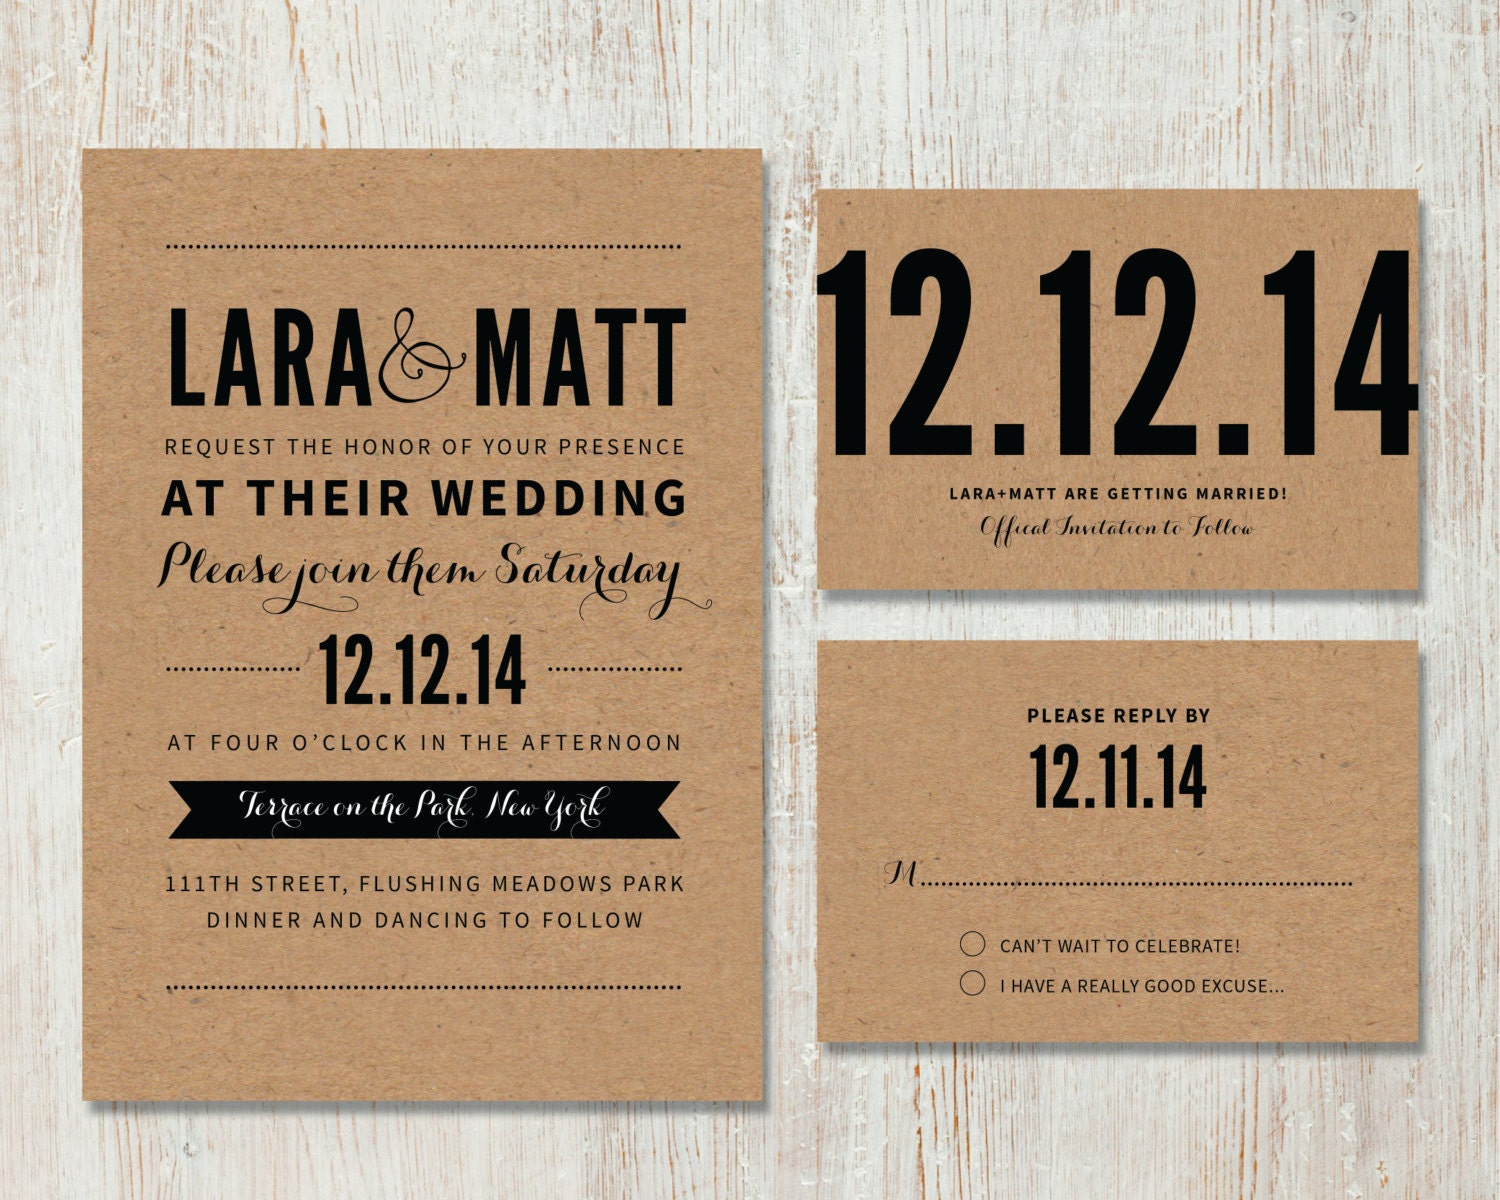 Rustic Diy Wedding Invitations: Rustic Wedding Invitation And RSVP DIY By PaperRouteCollective